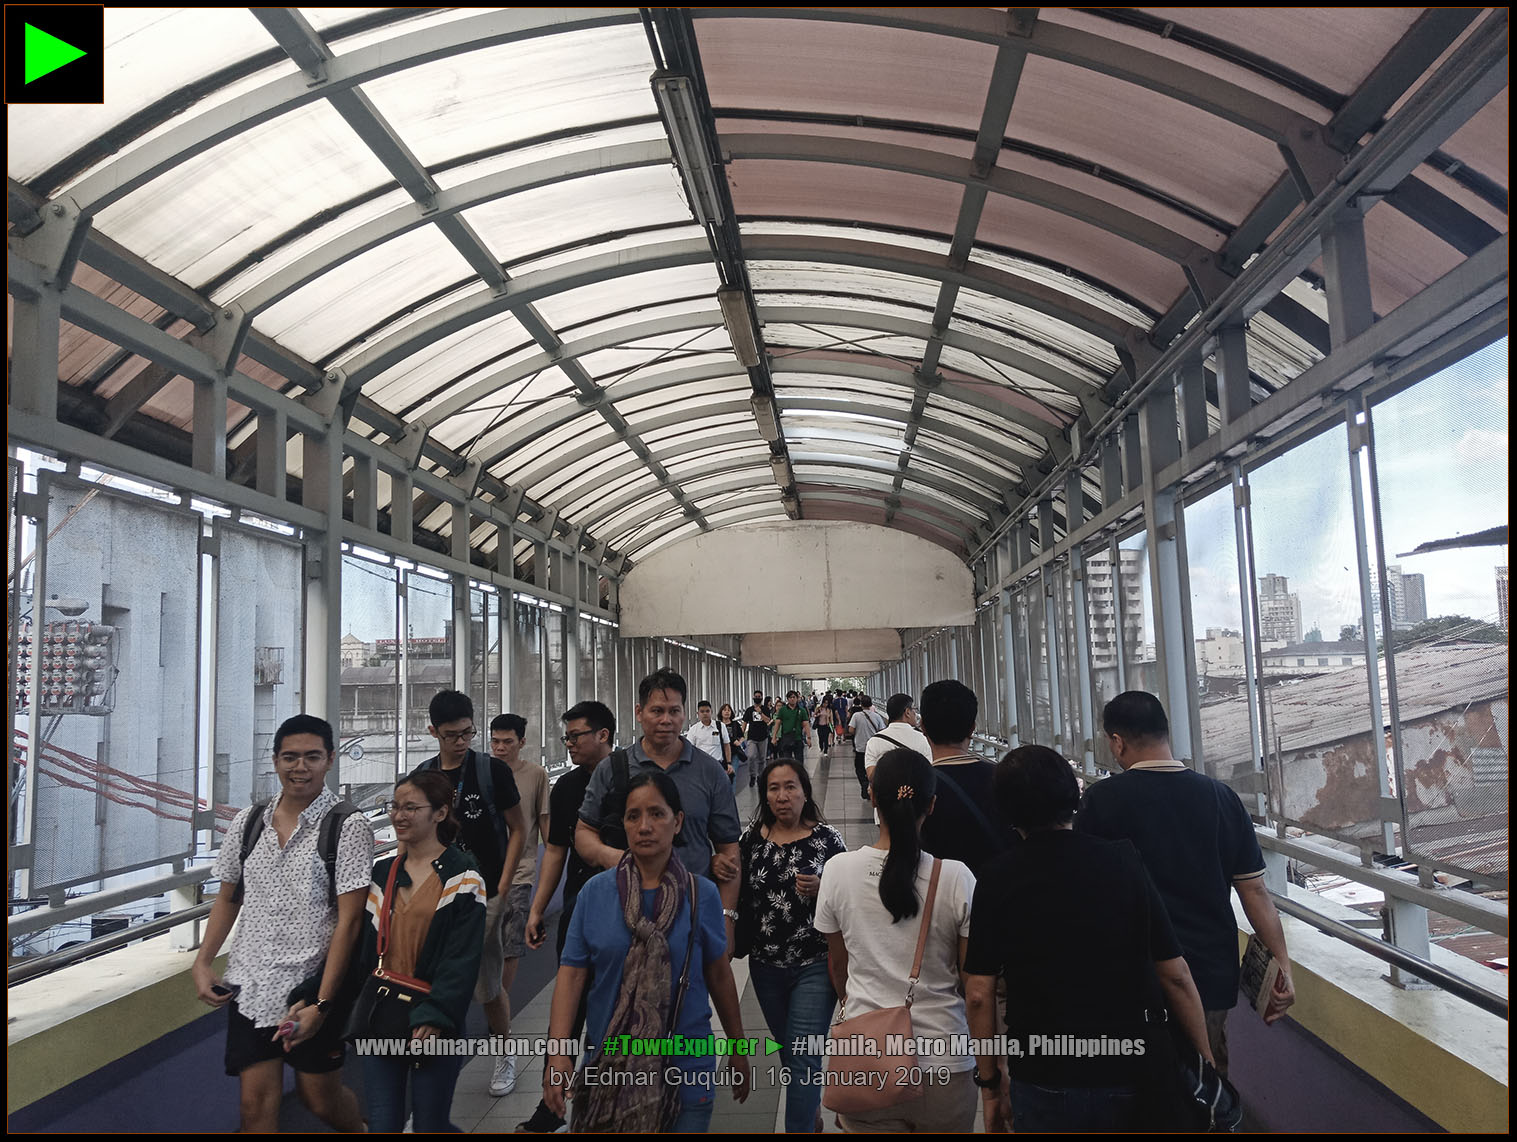 RECTO LRT STATION, MANILA